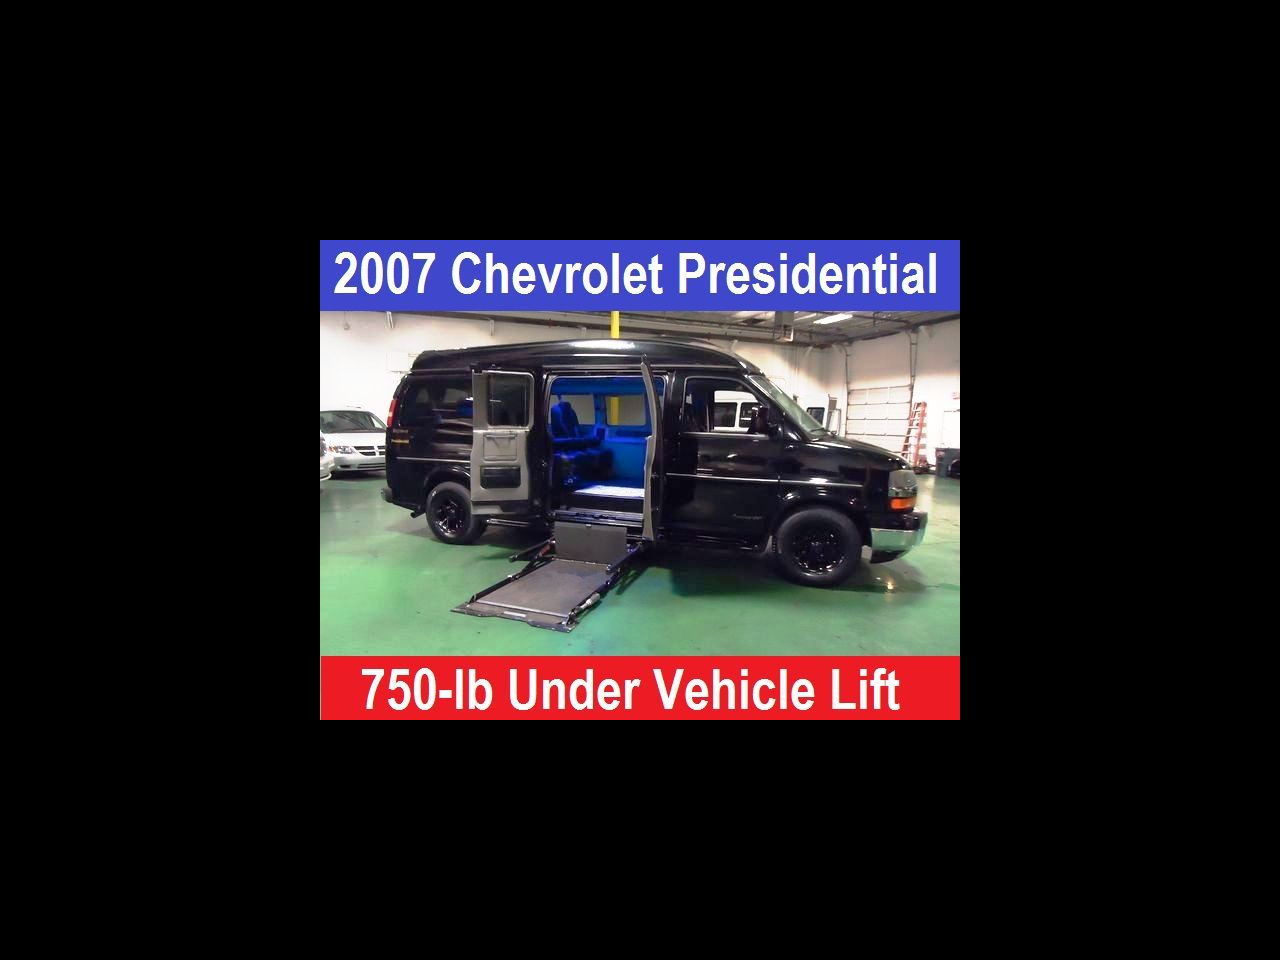 2007 Chevrolet 2500 Presidential Wheelchair Hadicap Mobility UVL Conve